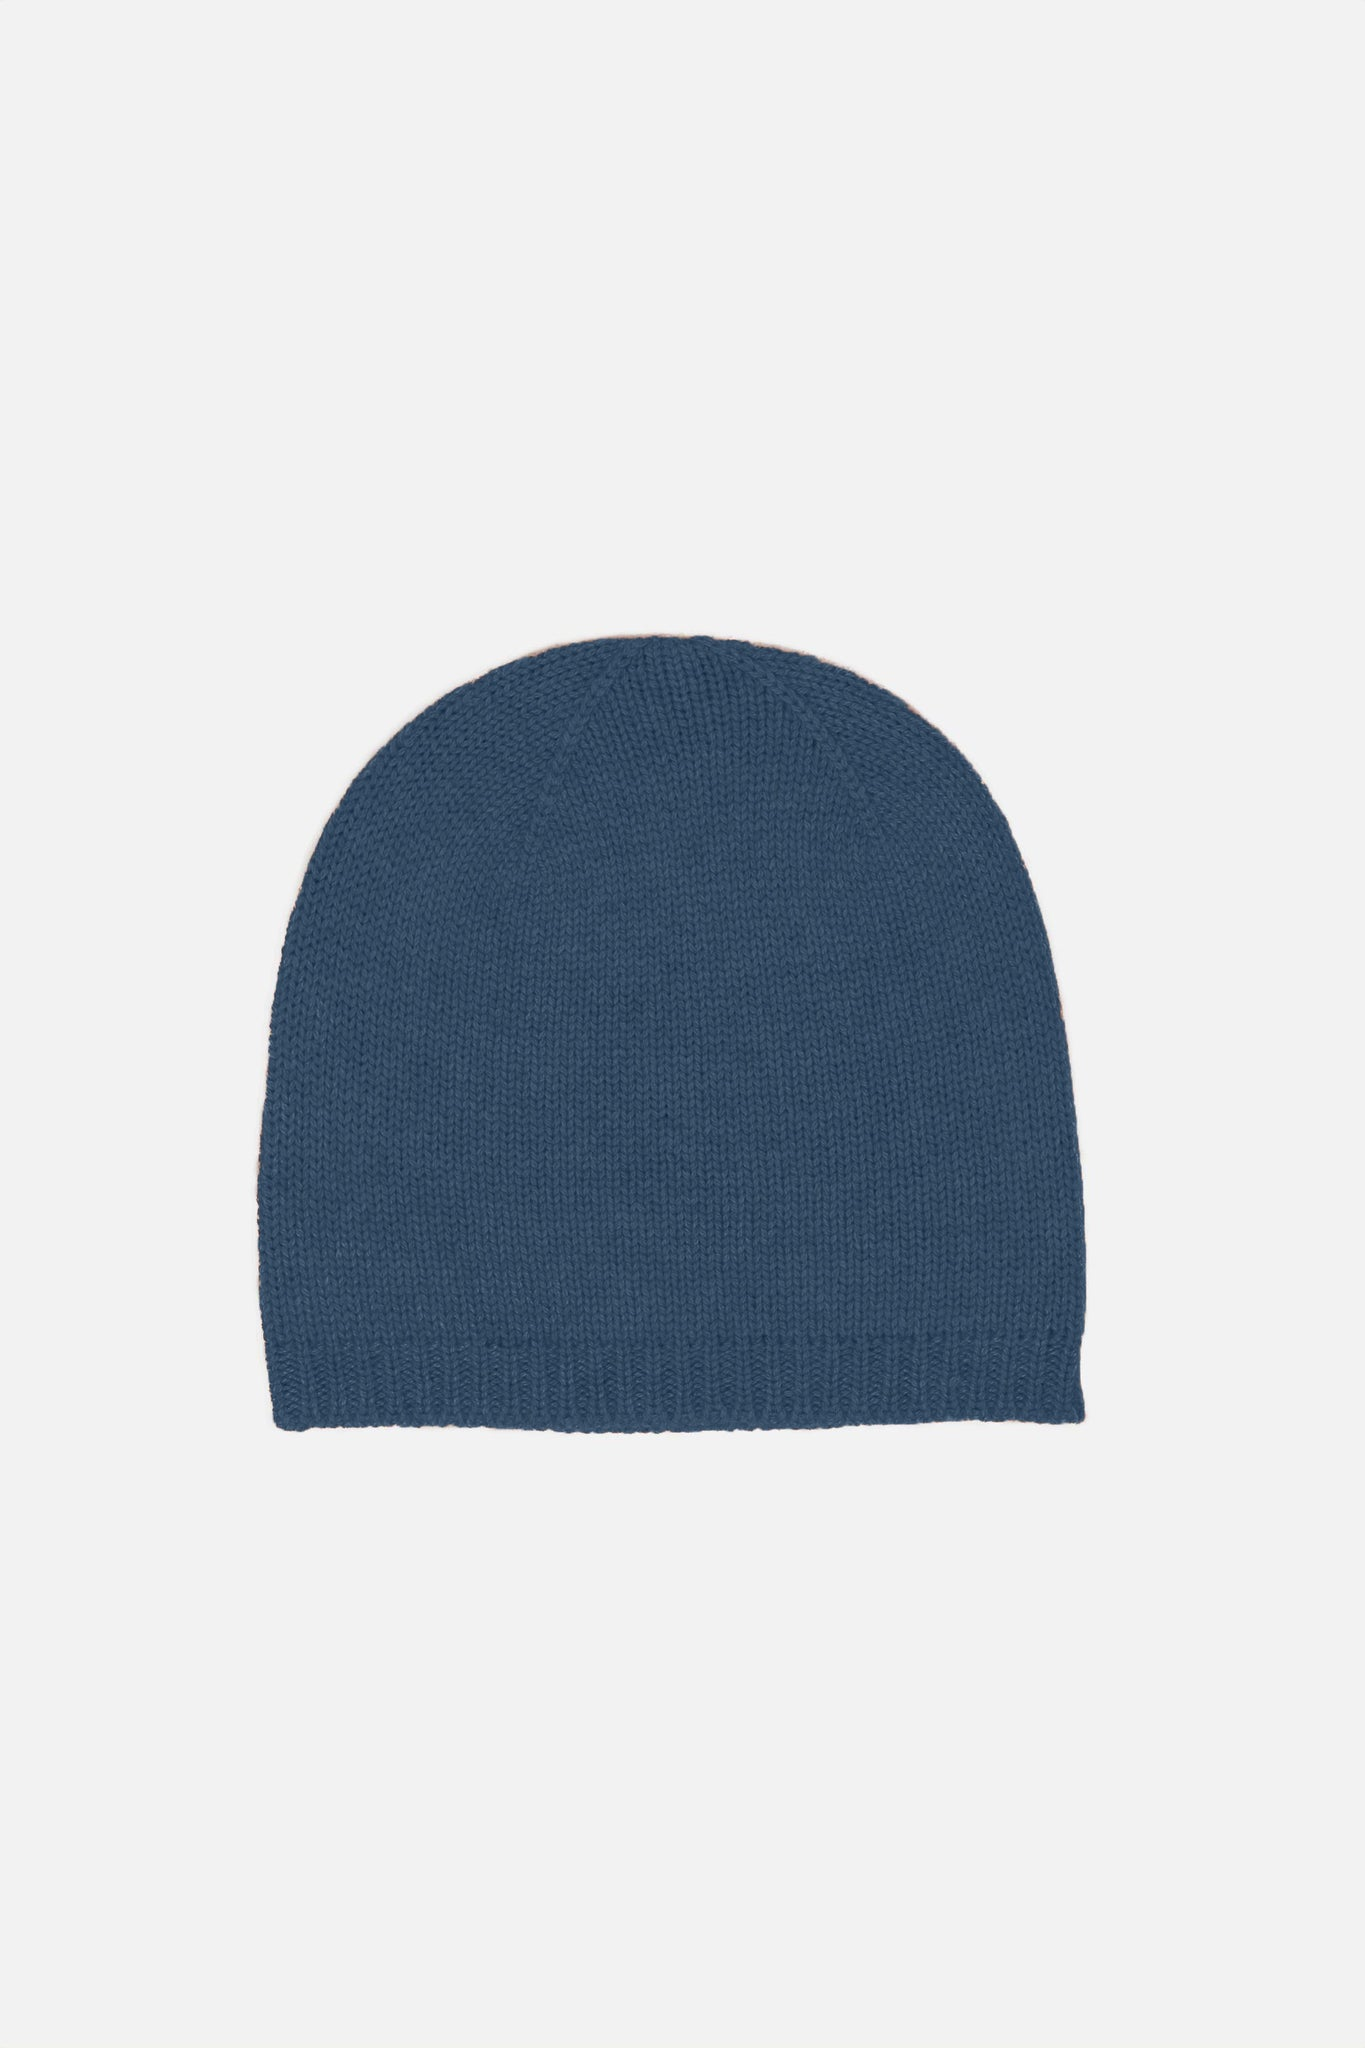 Nao cashmere beanie in blue